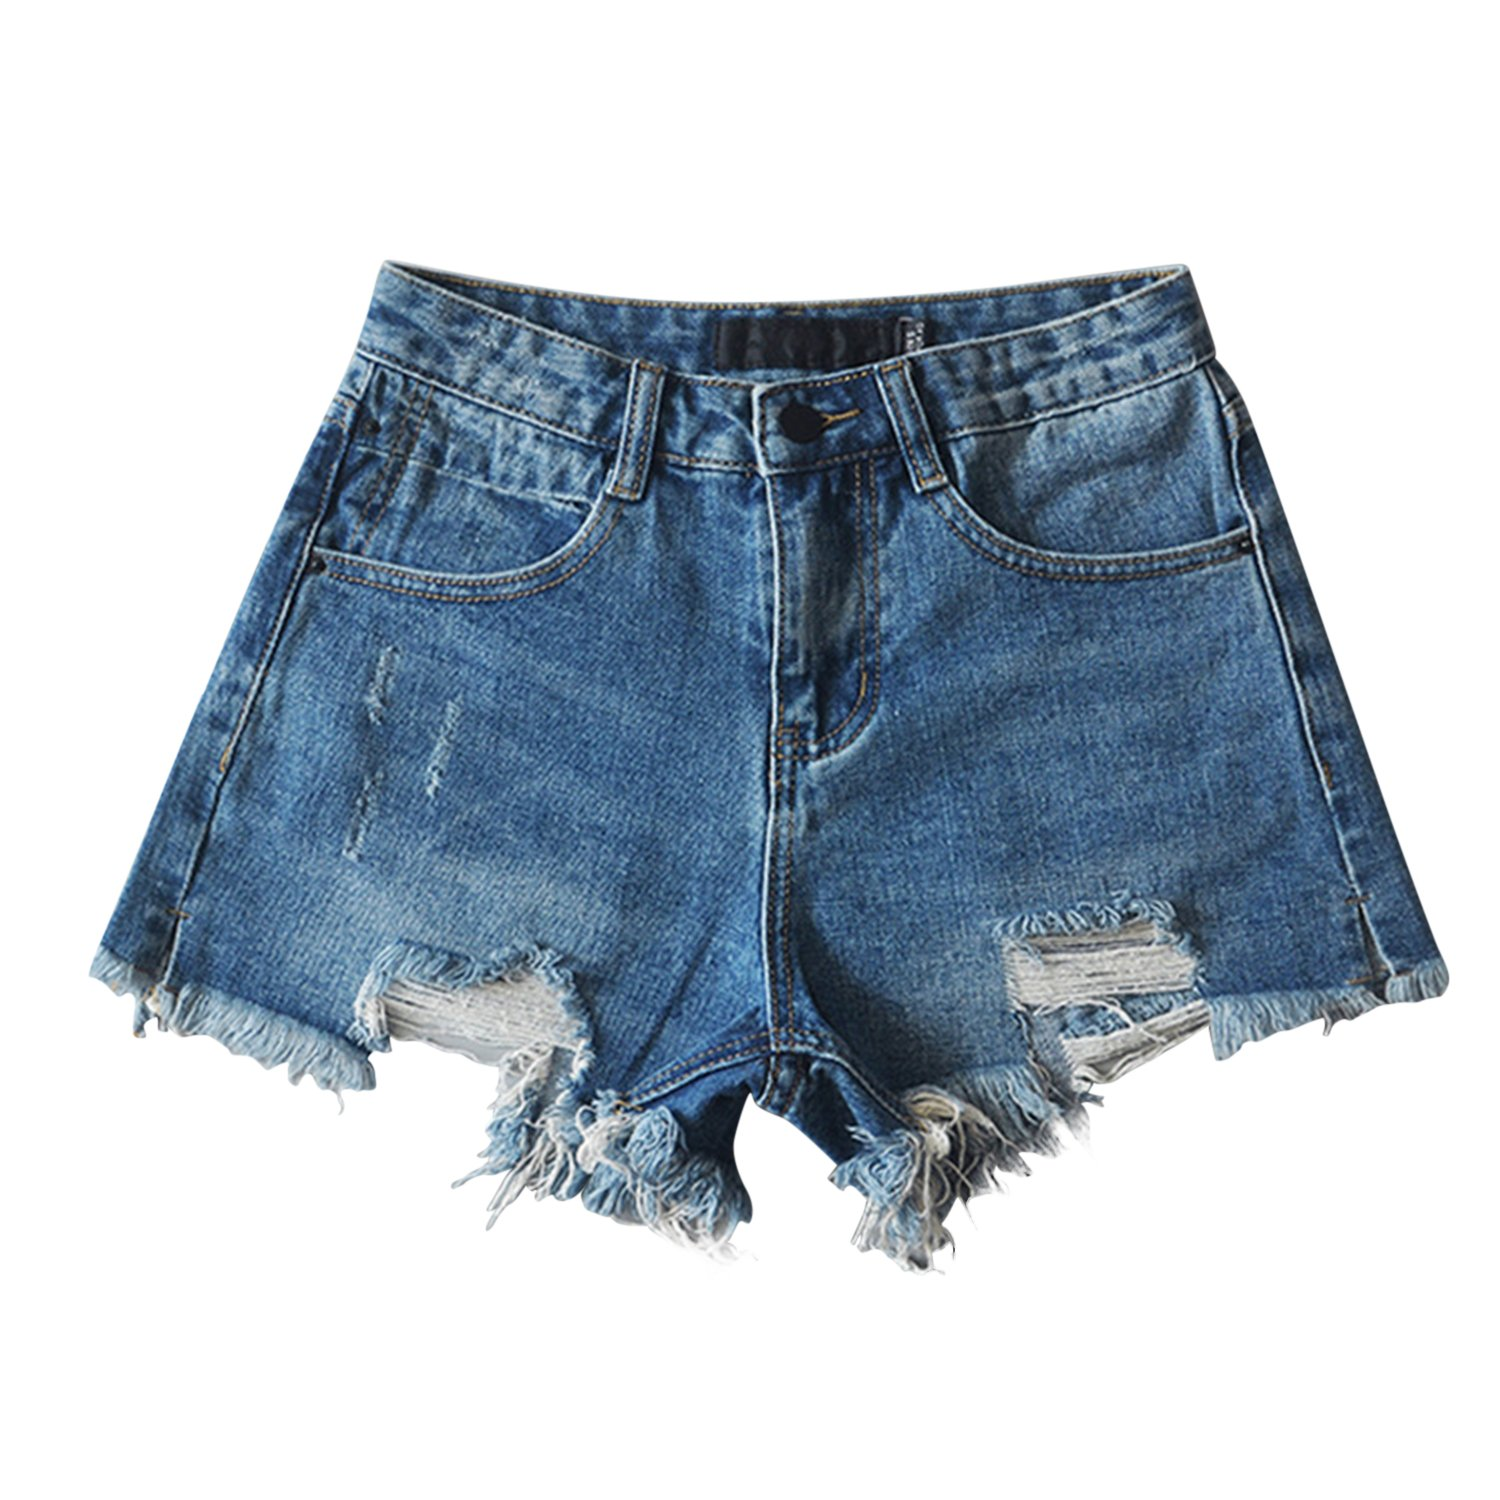 Misscat Womens Denim Jeans Distressed Worn-Out Ripped Short Pants